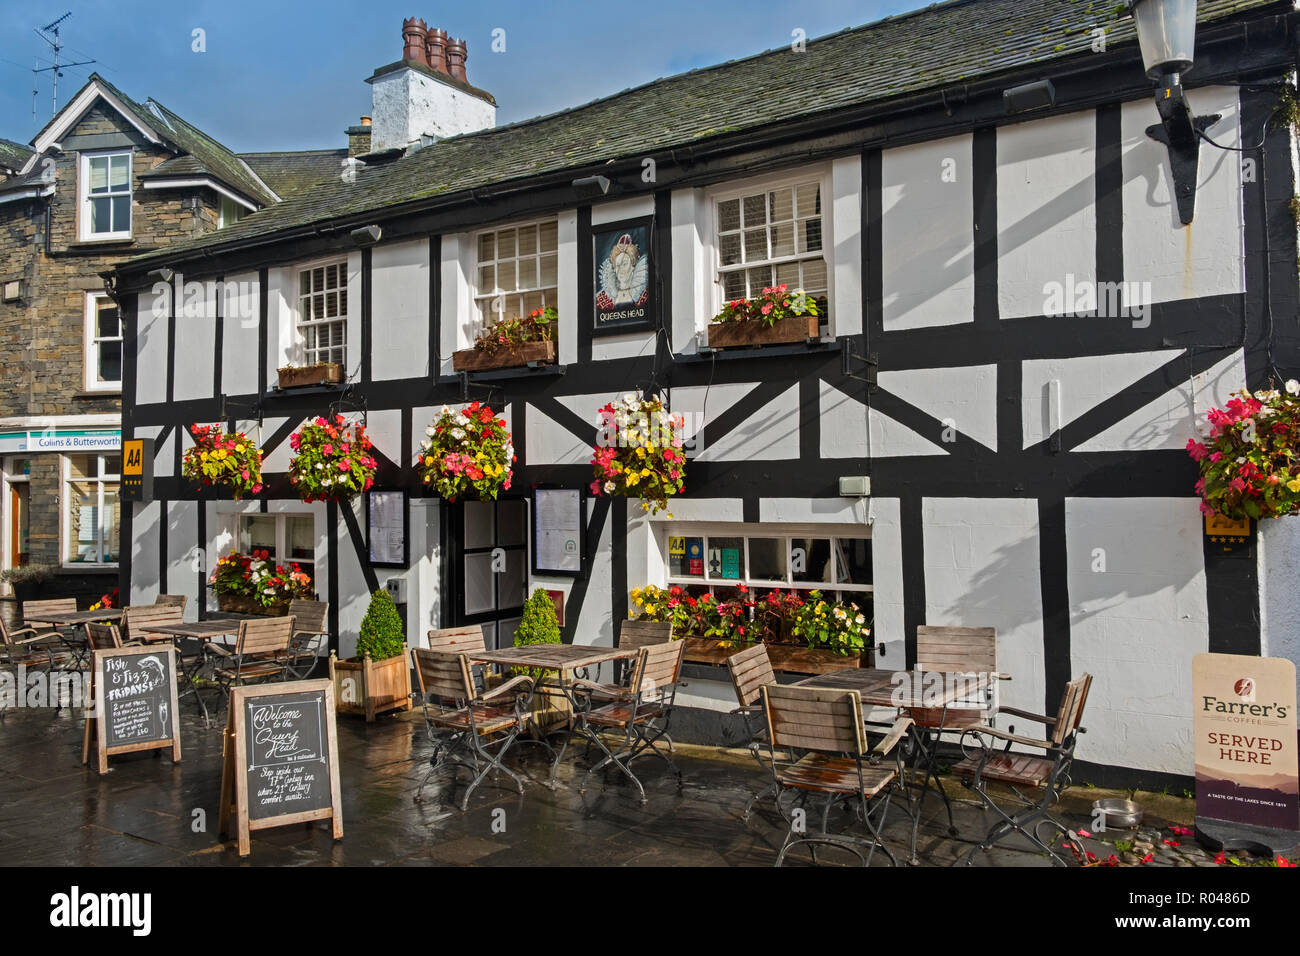 Queen's Head Hotel Hawkshead Village South Lakeland Cumbria UK - Stock Image